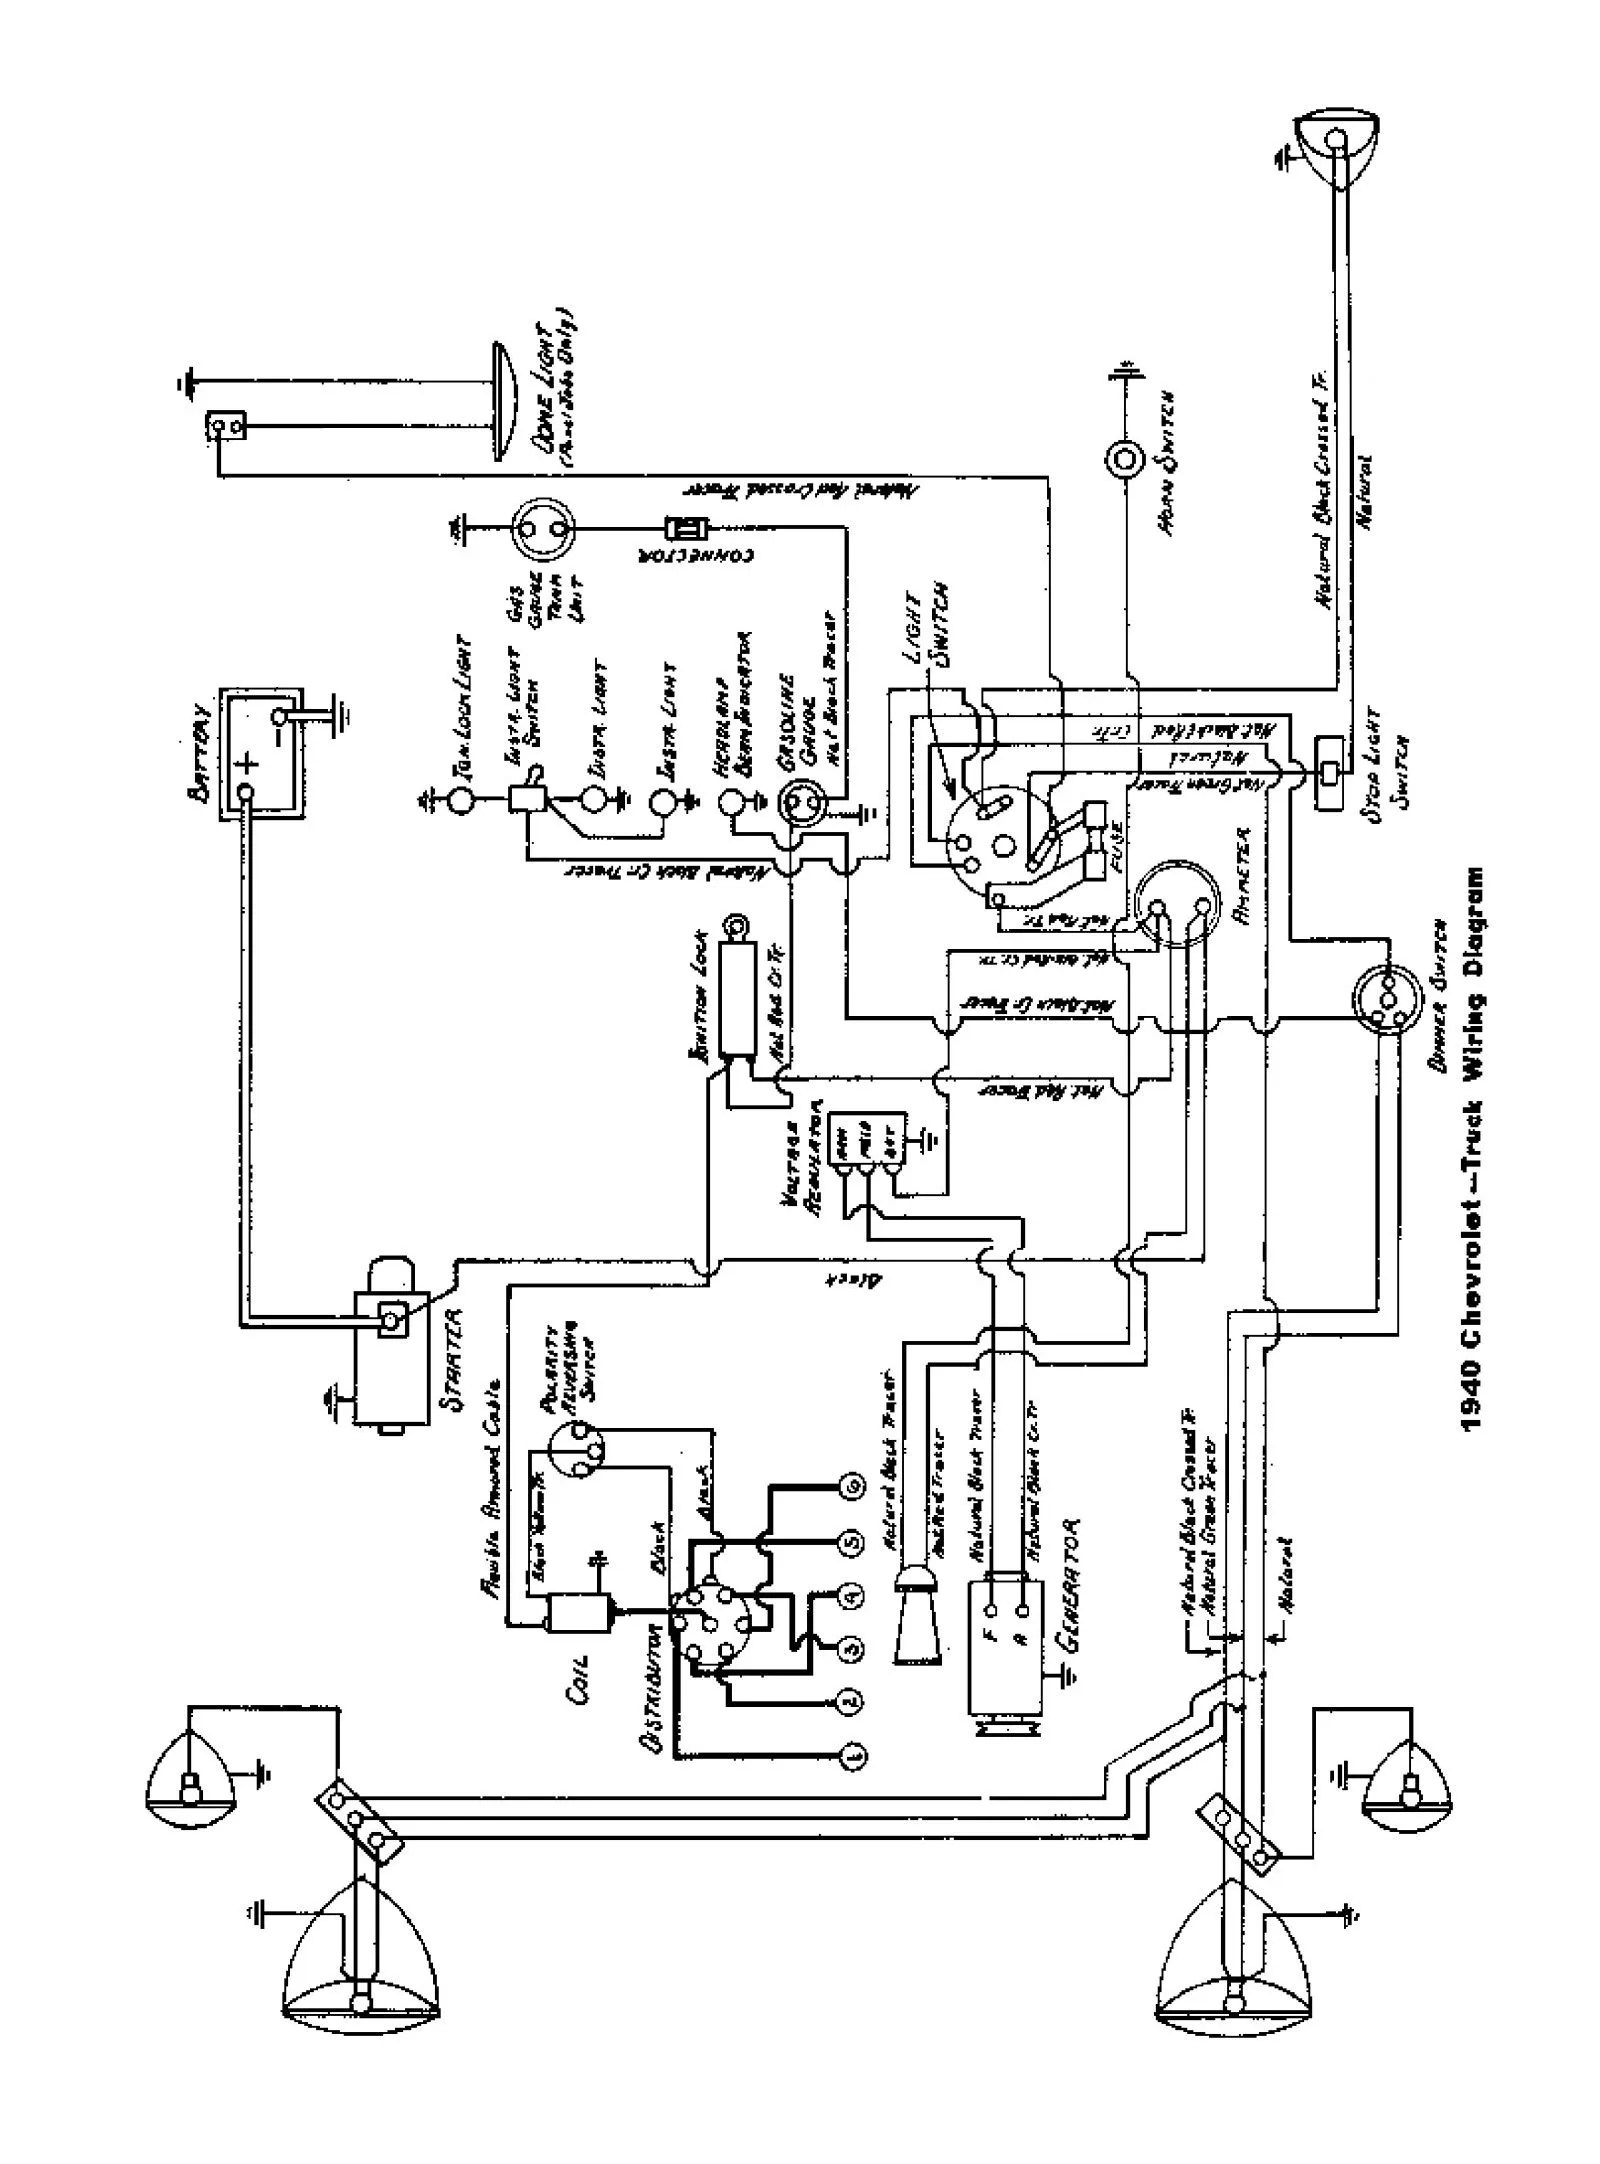 hight resolution of epiphone sg g 400 wiring diagram epiphone sgg 400 wiring diagram ls fuse box diagram